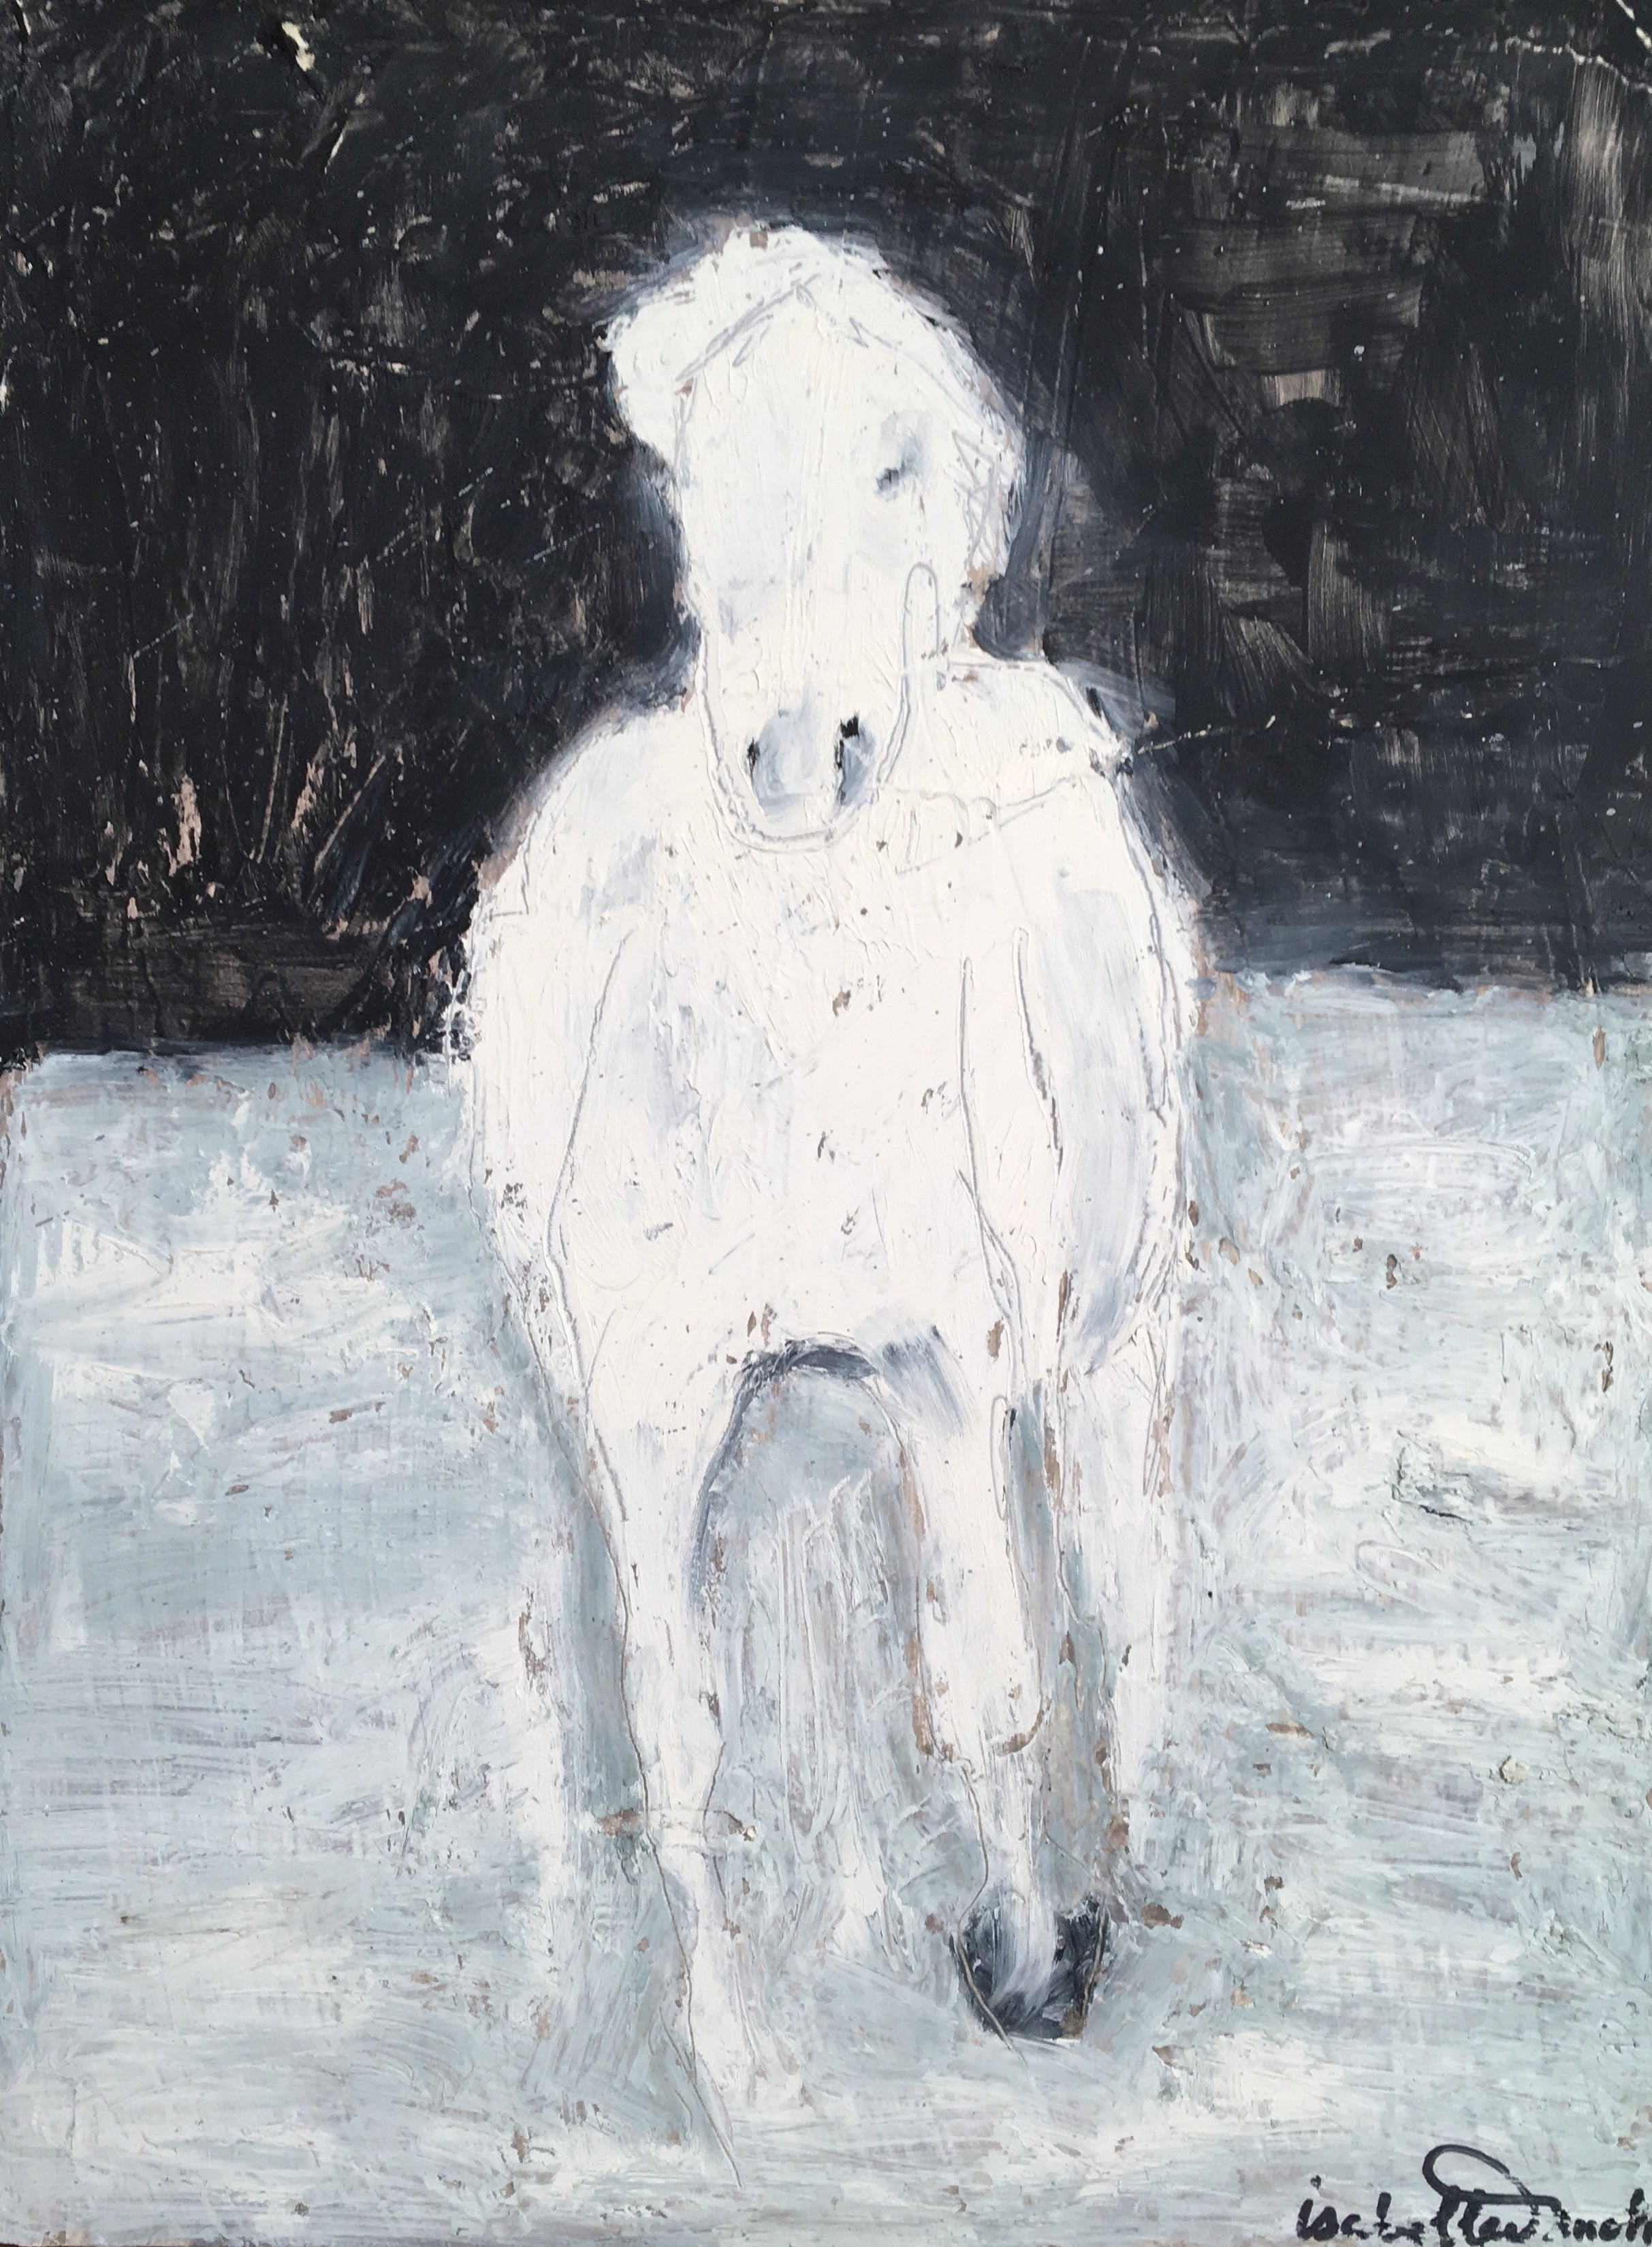 Inspired by the beautiful stallion of the Camargue, this oil original exudes energy in abstraction of the horse form galloping in the waters of the Rhone delta.